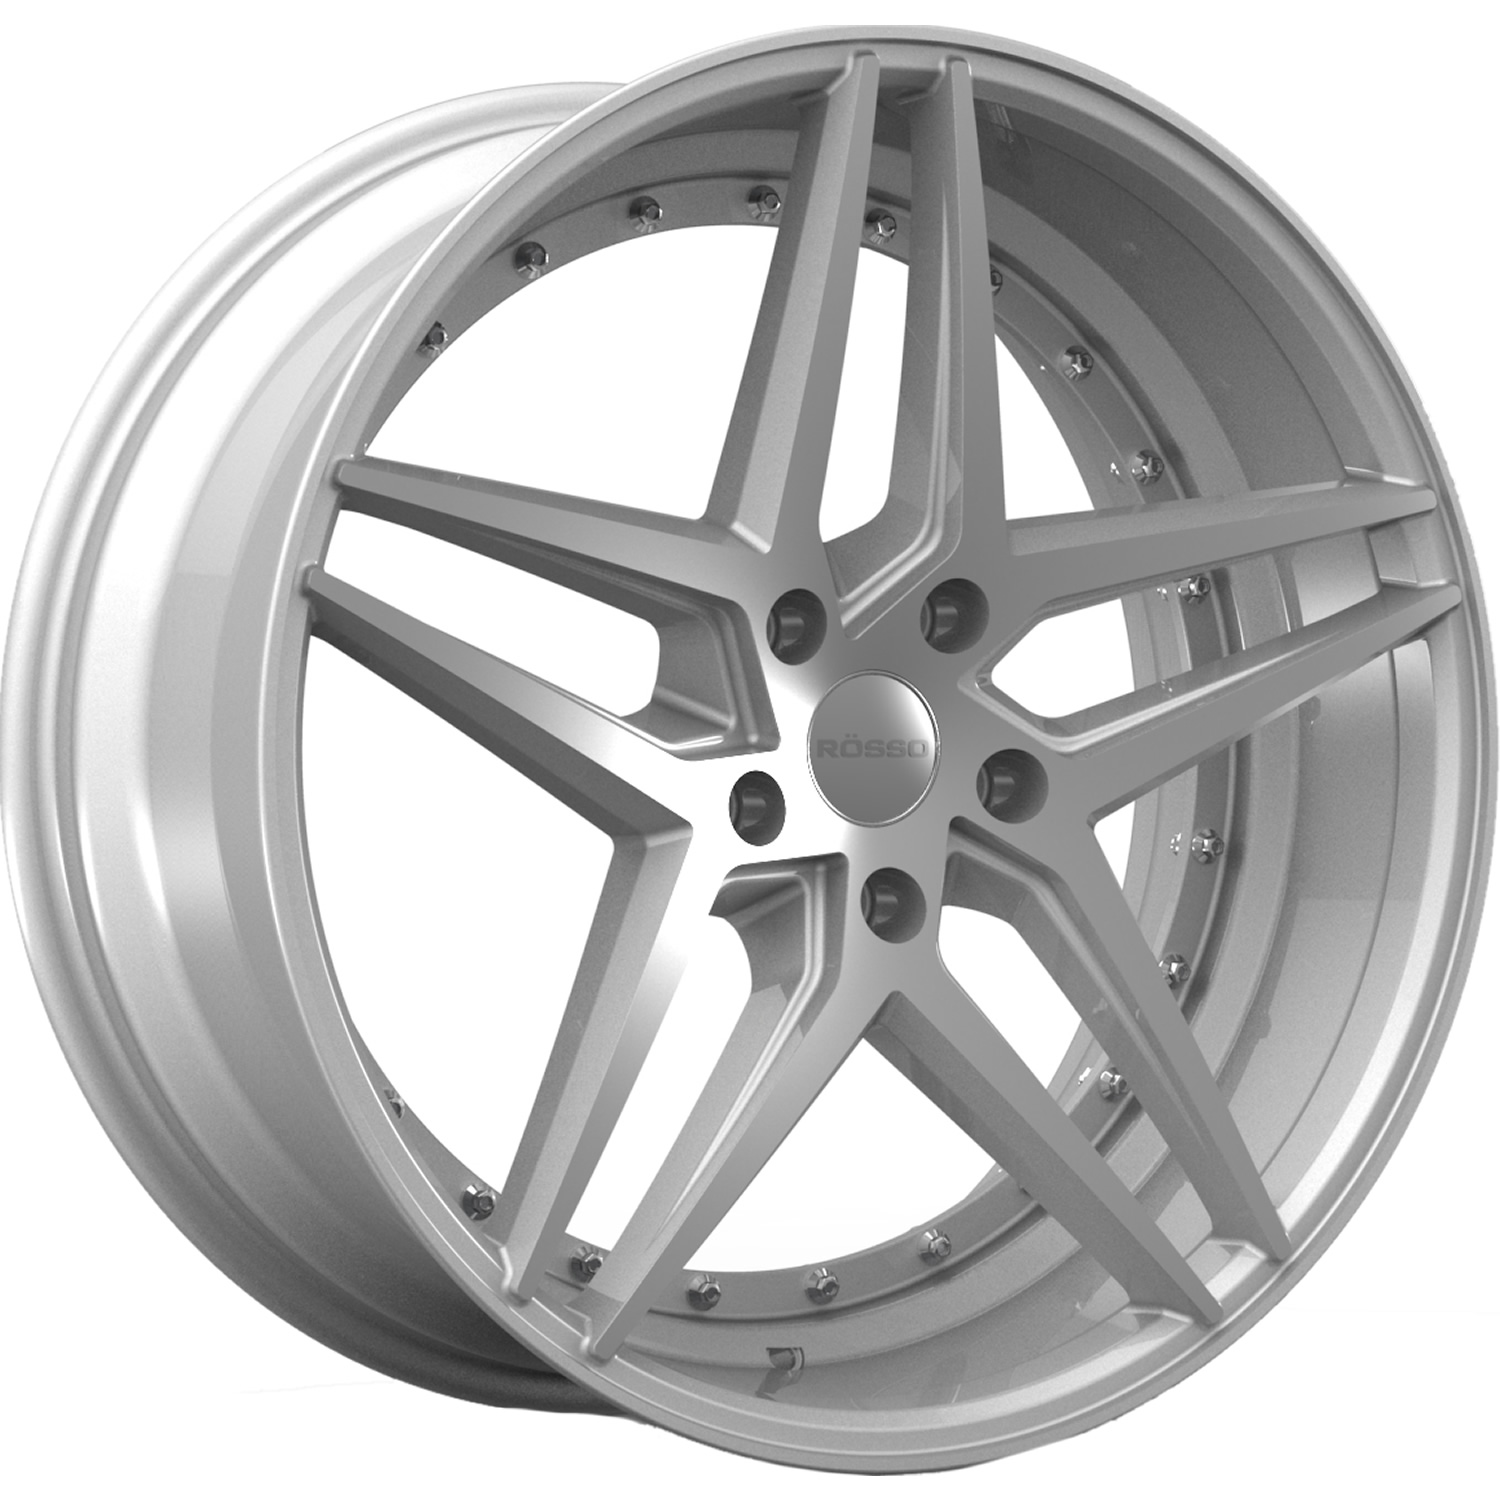 Rosso Reactiv Silver with Machined Spoke Faces 22x10.5 40